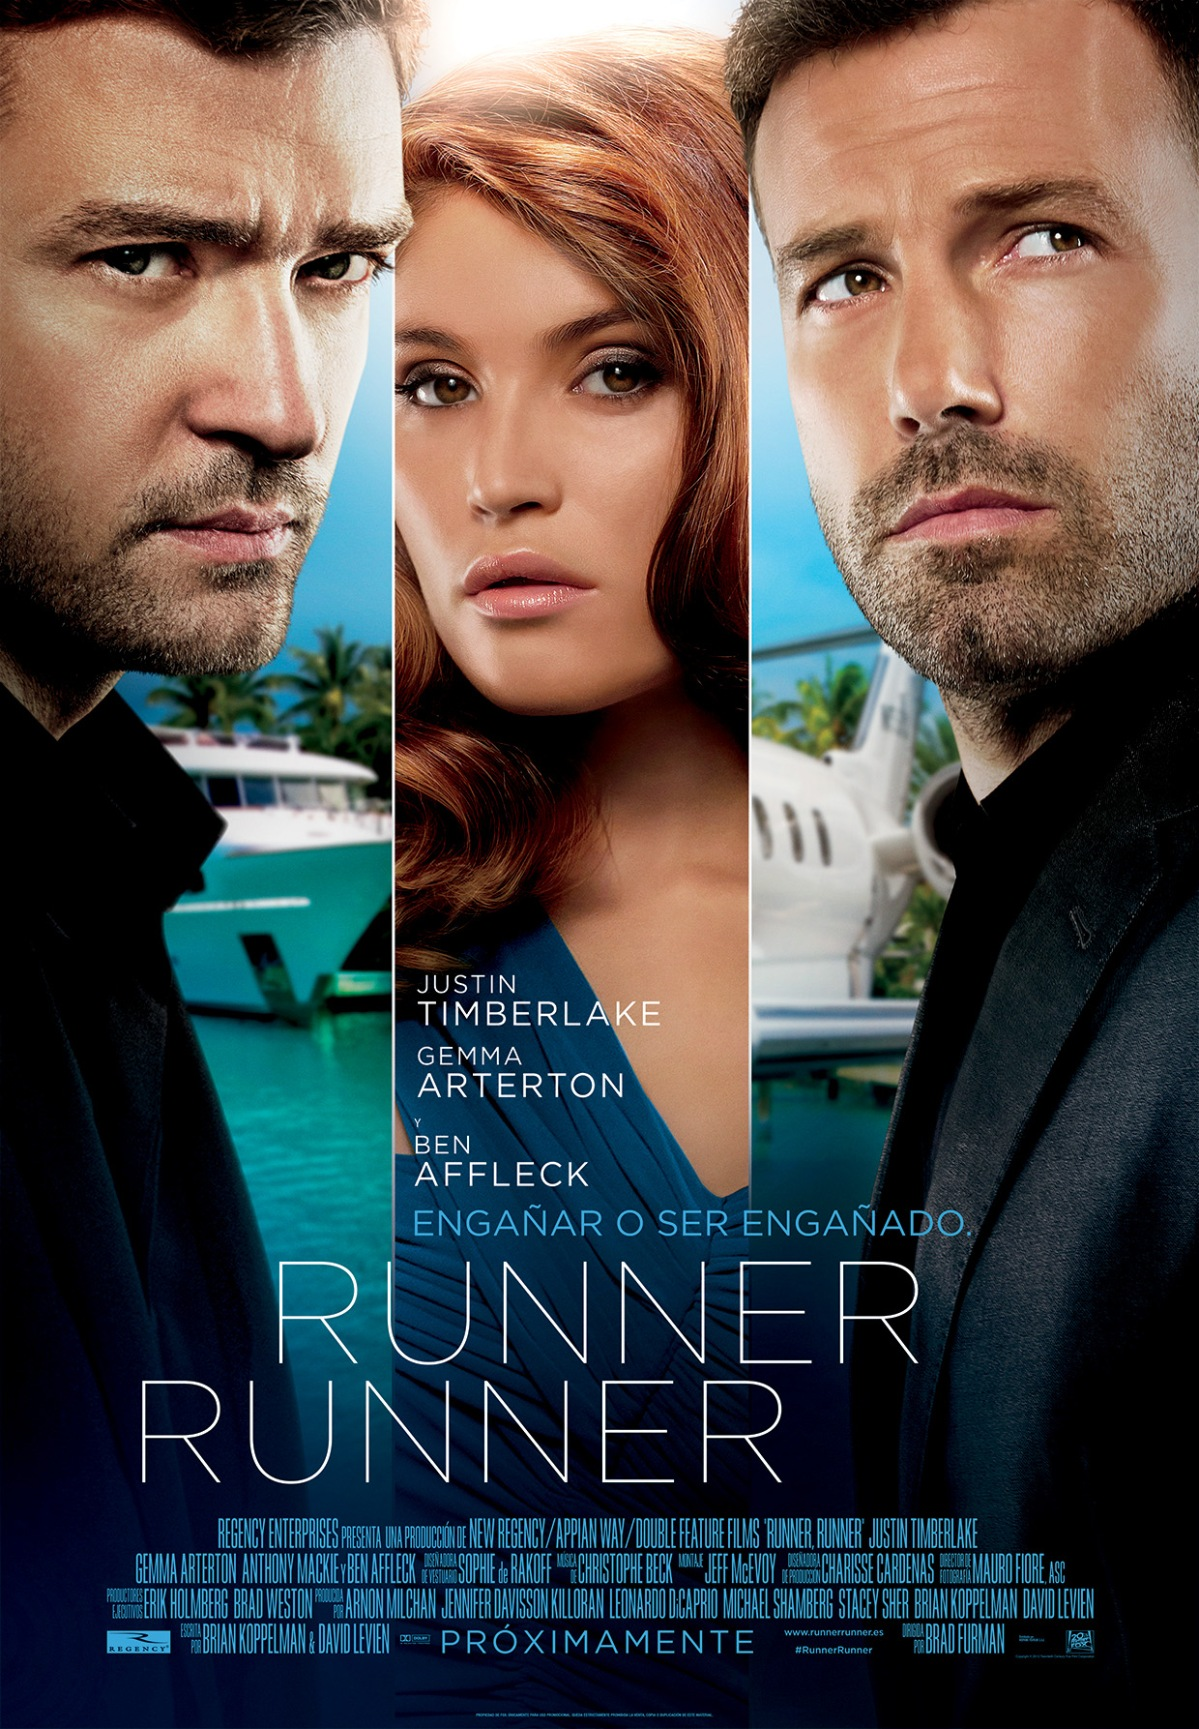 http://dosparalatres.files.wordpress.com/2013/10/runner_runner_poster.jpg?w=1200